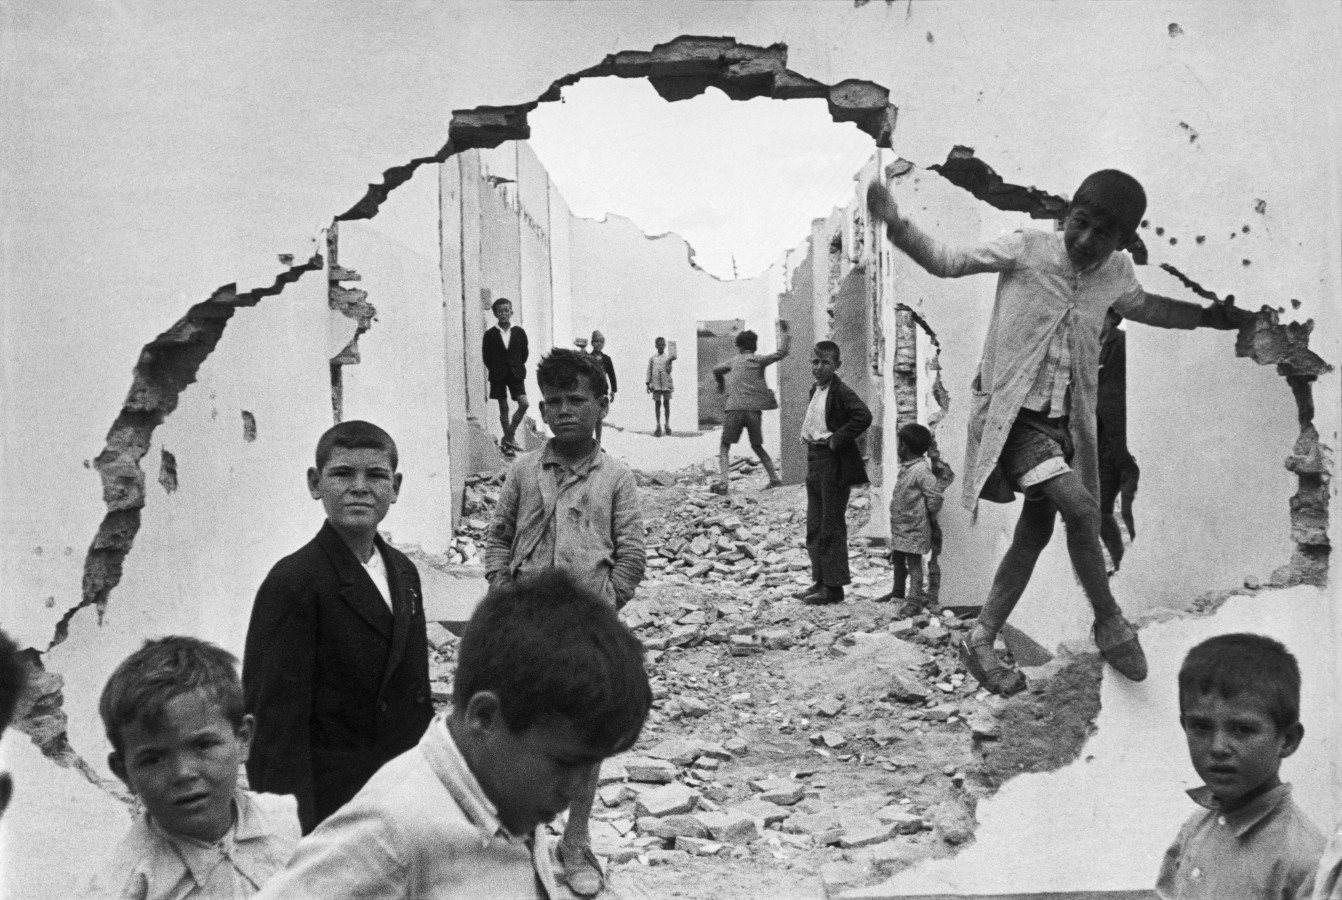 http://2.bp.blogspot.com/-0-5KKMI5NuA/Tm8vWKL0tsI/AAAAAAAAApU/43ZOTTTDYNg/s1600/henri-cartier-bresson-hyeres-france-1932-seville-spain-1944-wall-hole-children-playing.jpg